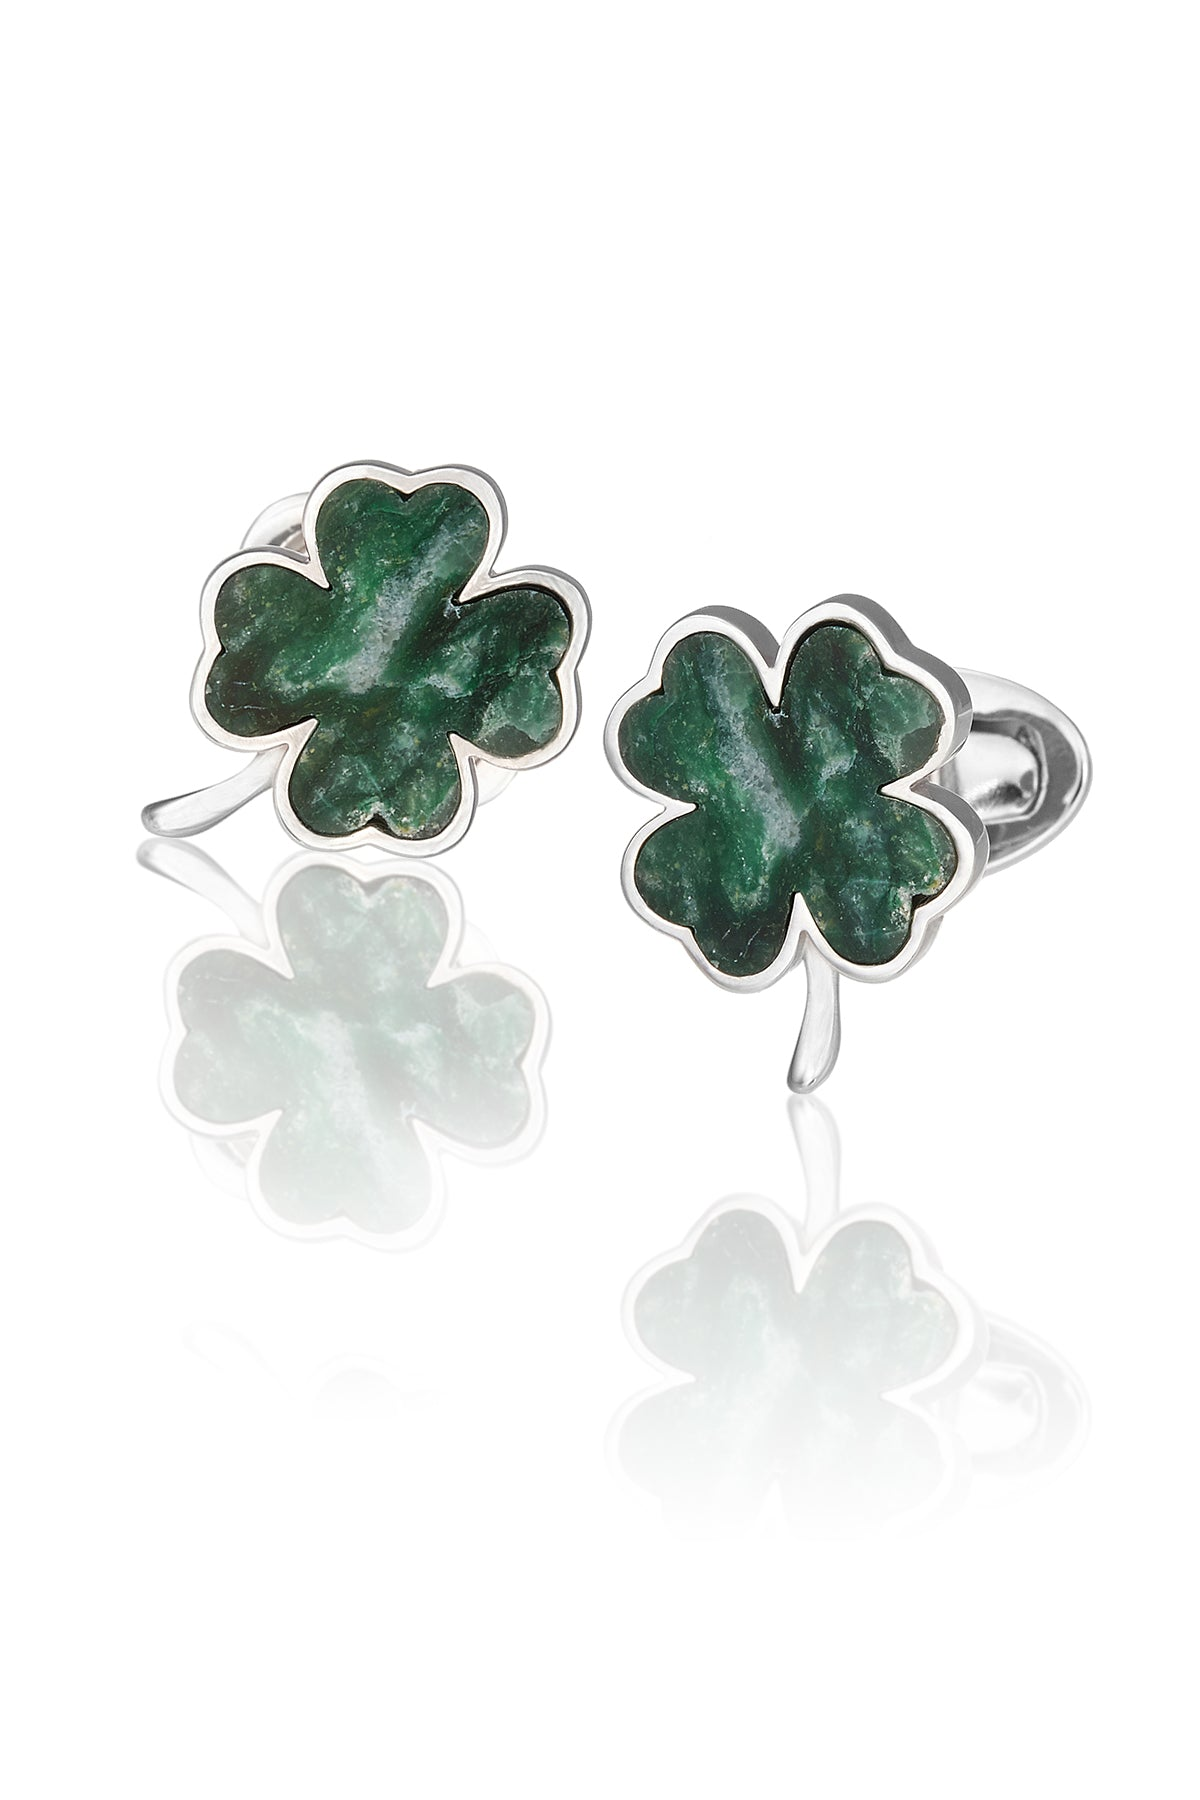 Italian Green Onyx Four-Leaf Clover Cufflinks